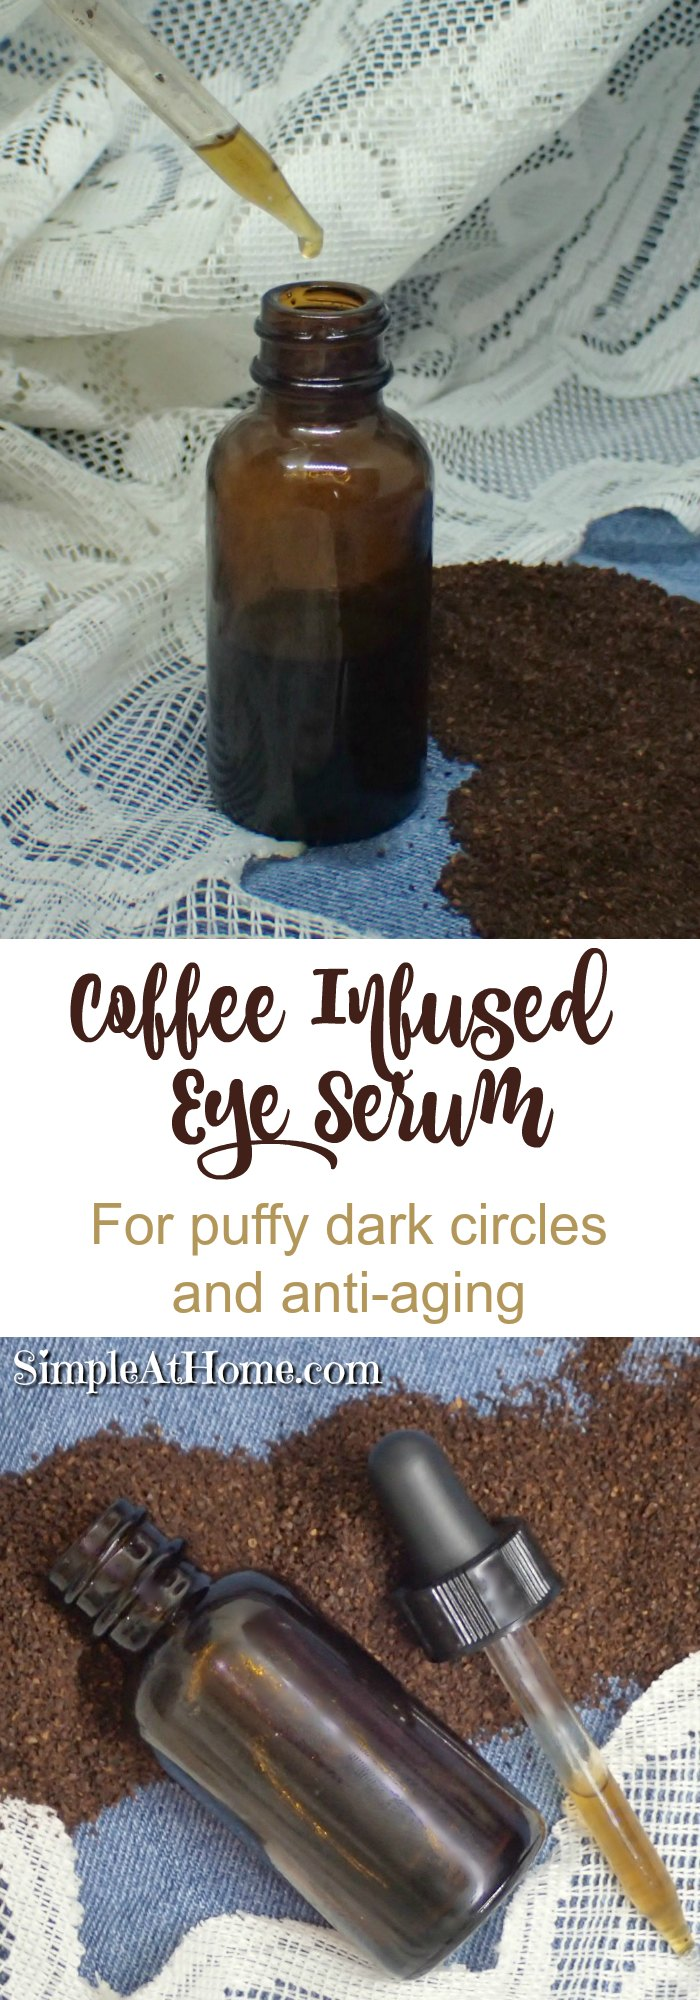 Give this DIY Coffee Infused Eye Serum a trey to eliminate dark circles, and puffiness. With Argon oil for anti ageing, anti wrinkle